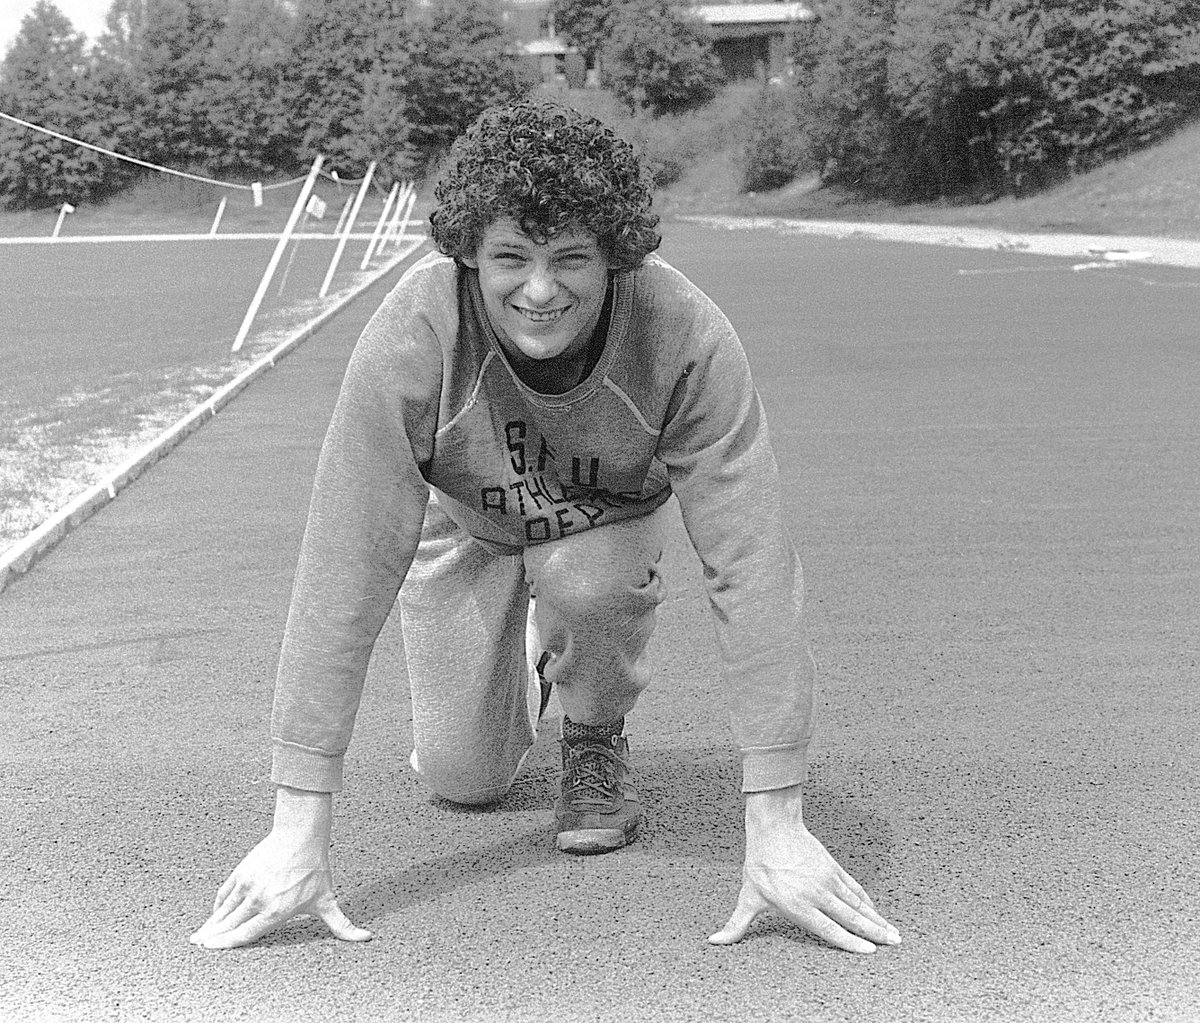 an introduction to the life of terry fox Synopsis terry fox, the one-legged runner from port coquitlam, british columbia, made an indelible impression upon people across canada and around the when terry was in pain, he wouldn't go to the doctor terry had a passion for life, and it was this passion, which gave millions of others hopes.